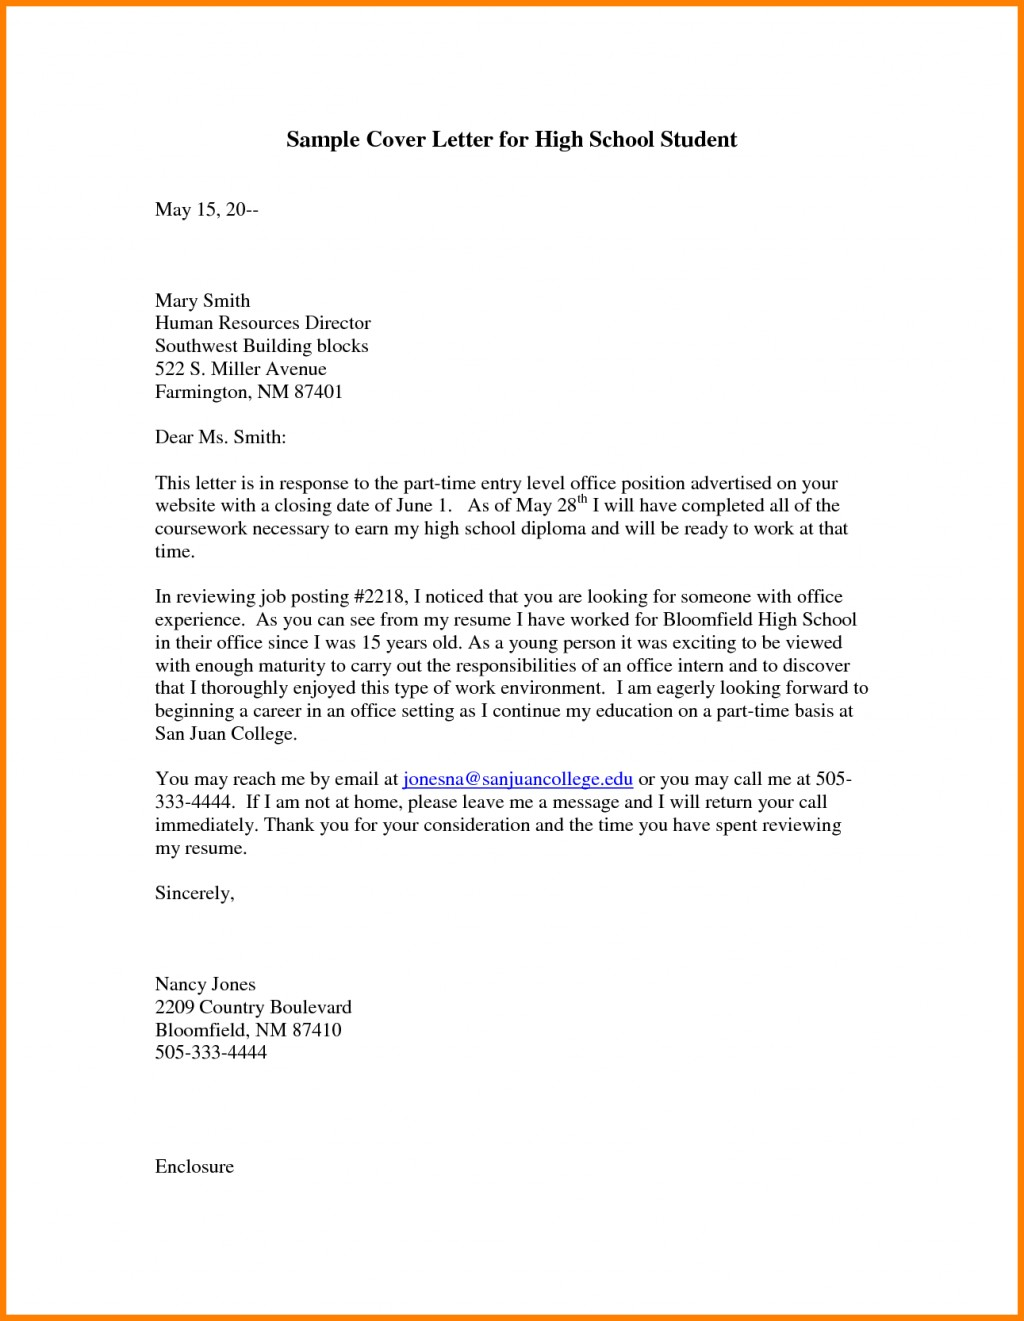 011 Letter For School Sample Essay Example Why Nyu Exceptional Supplement Examples College Confidential Large